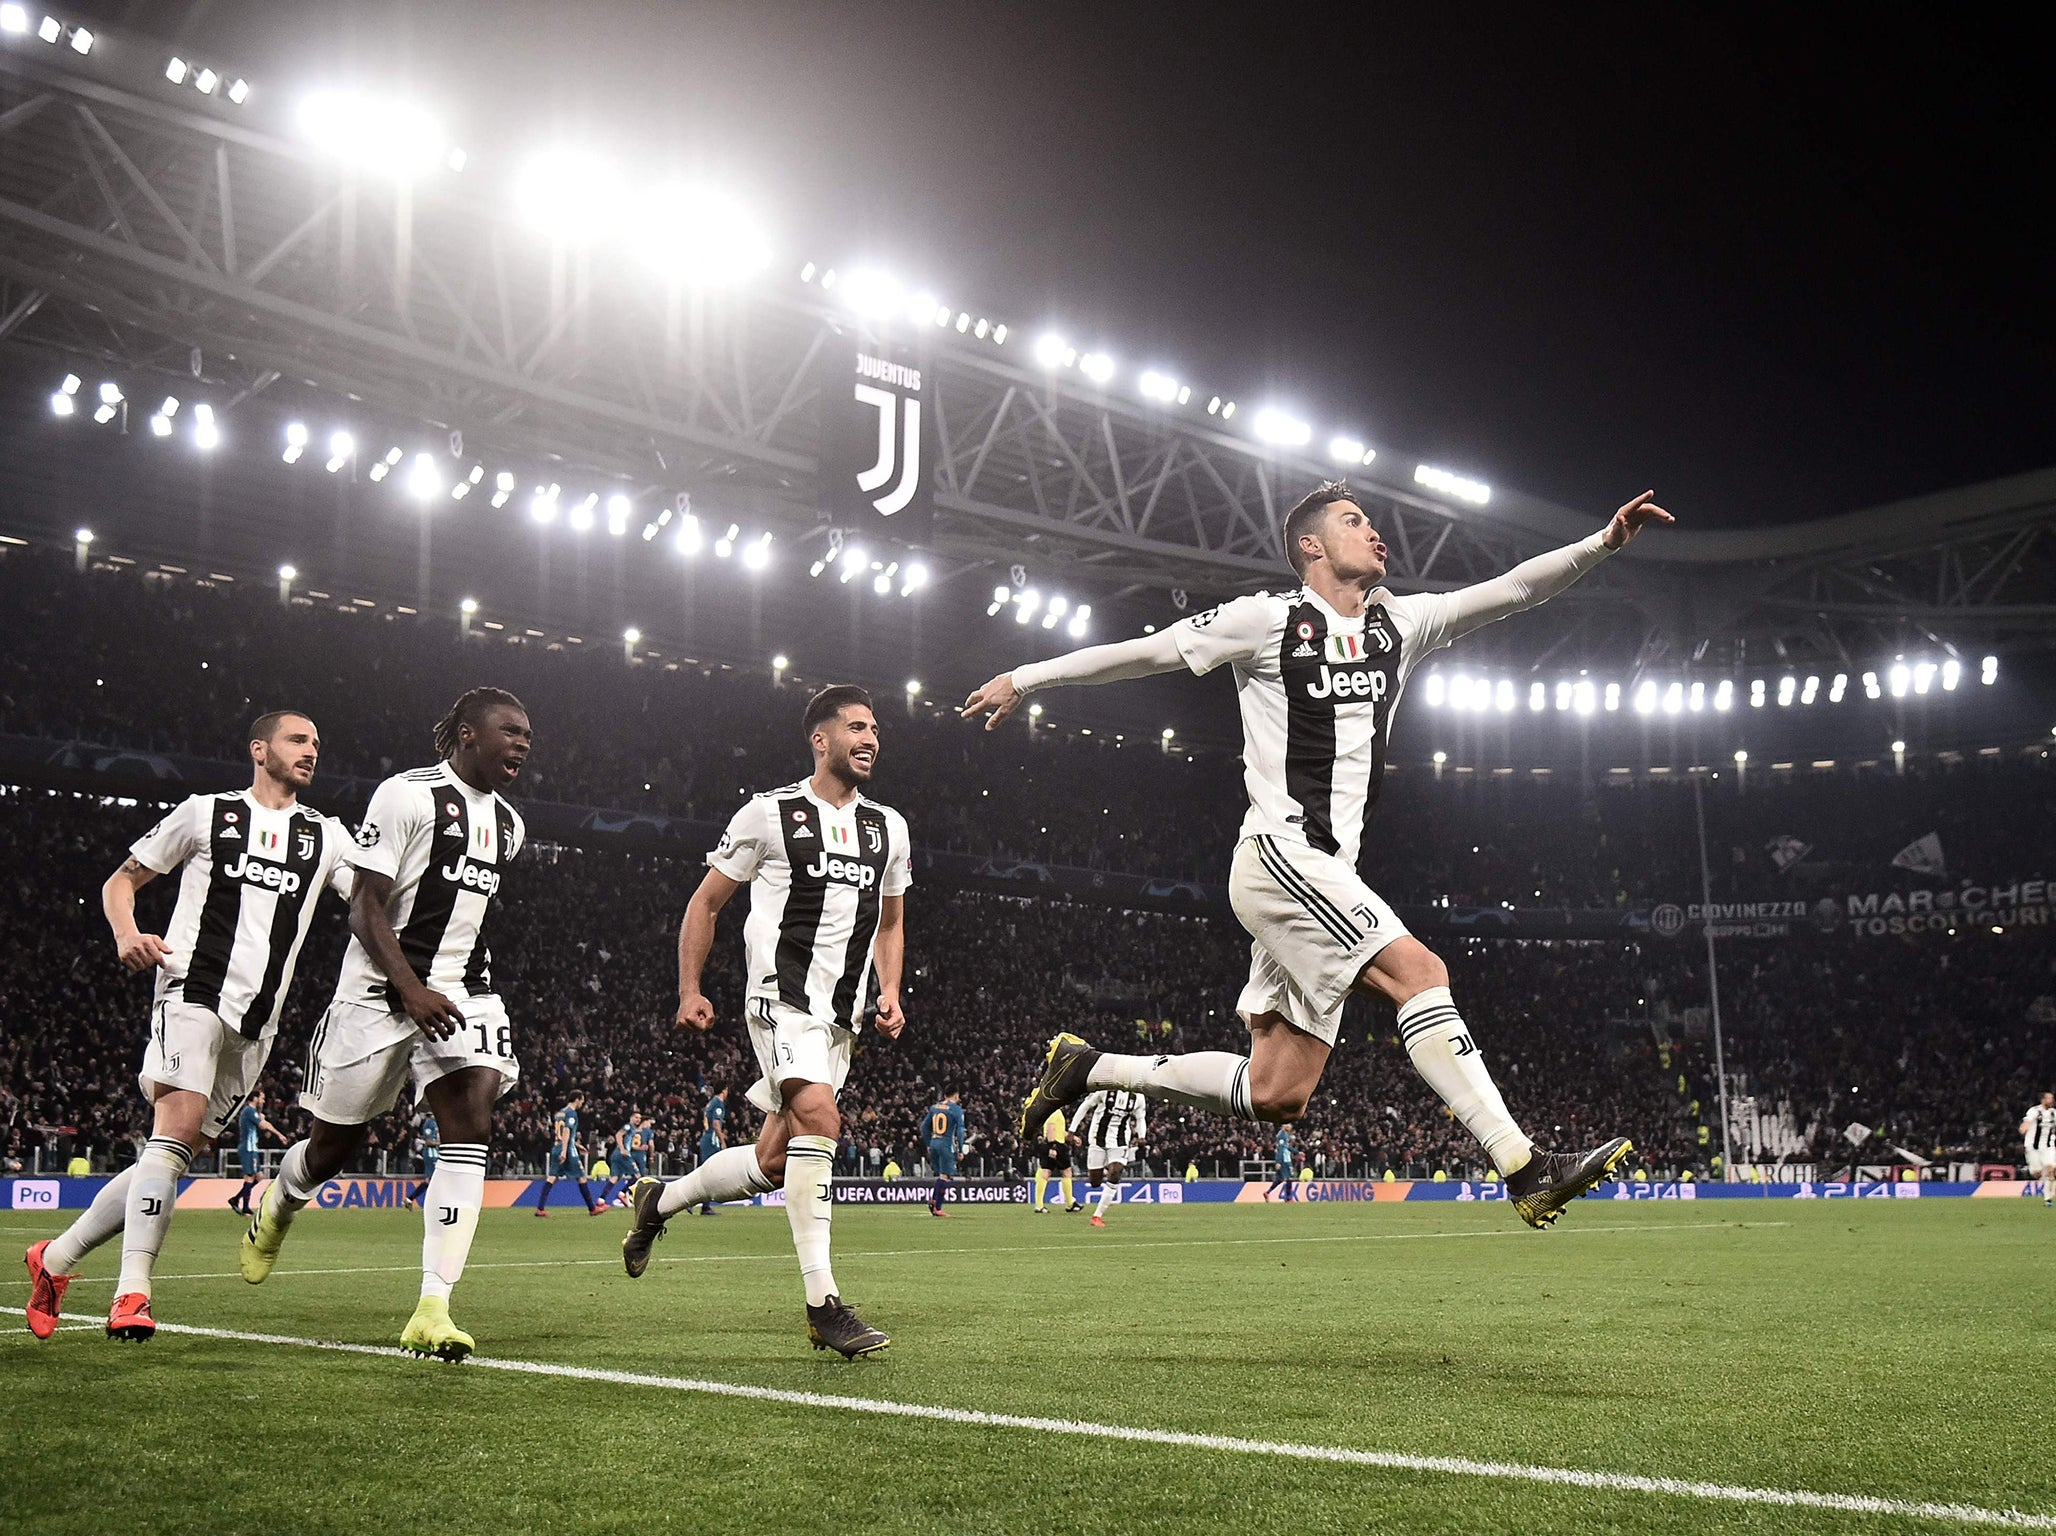 Champions League power rankings: Liverpool and Juventus rise with Manchester United reinvigorated under Ole Gunnar Solskjaer